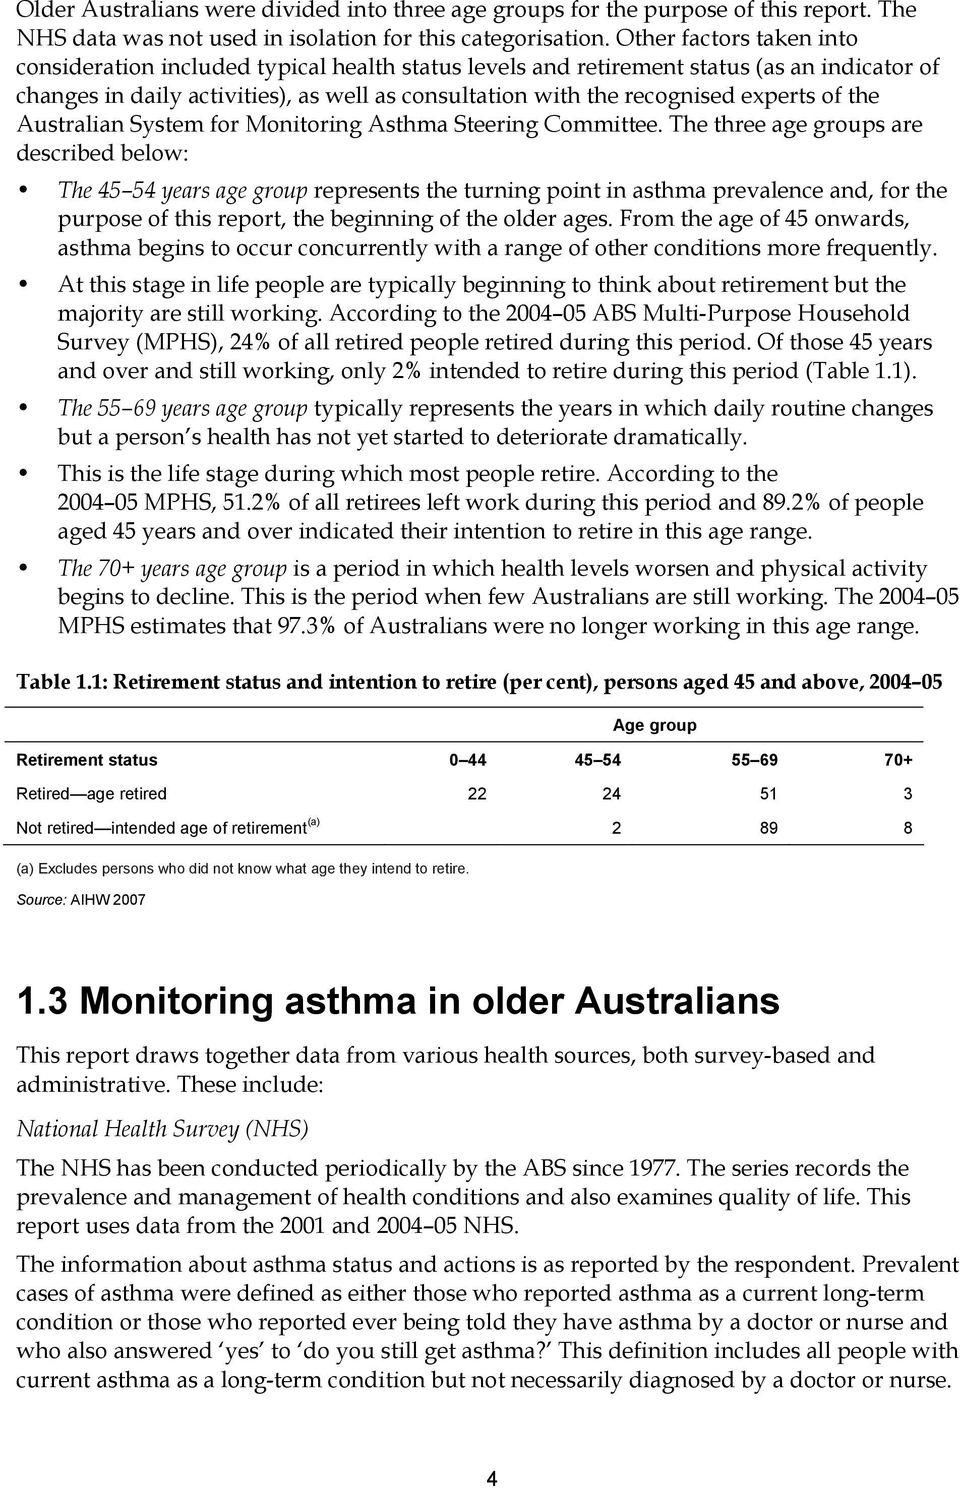 experts of the Australian System for Monitoring Asthma Steering Committee.